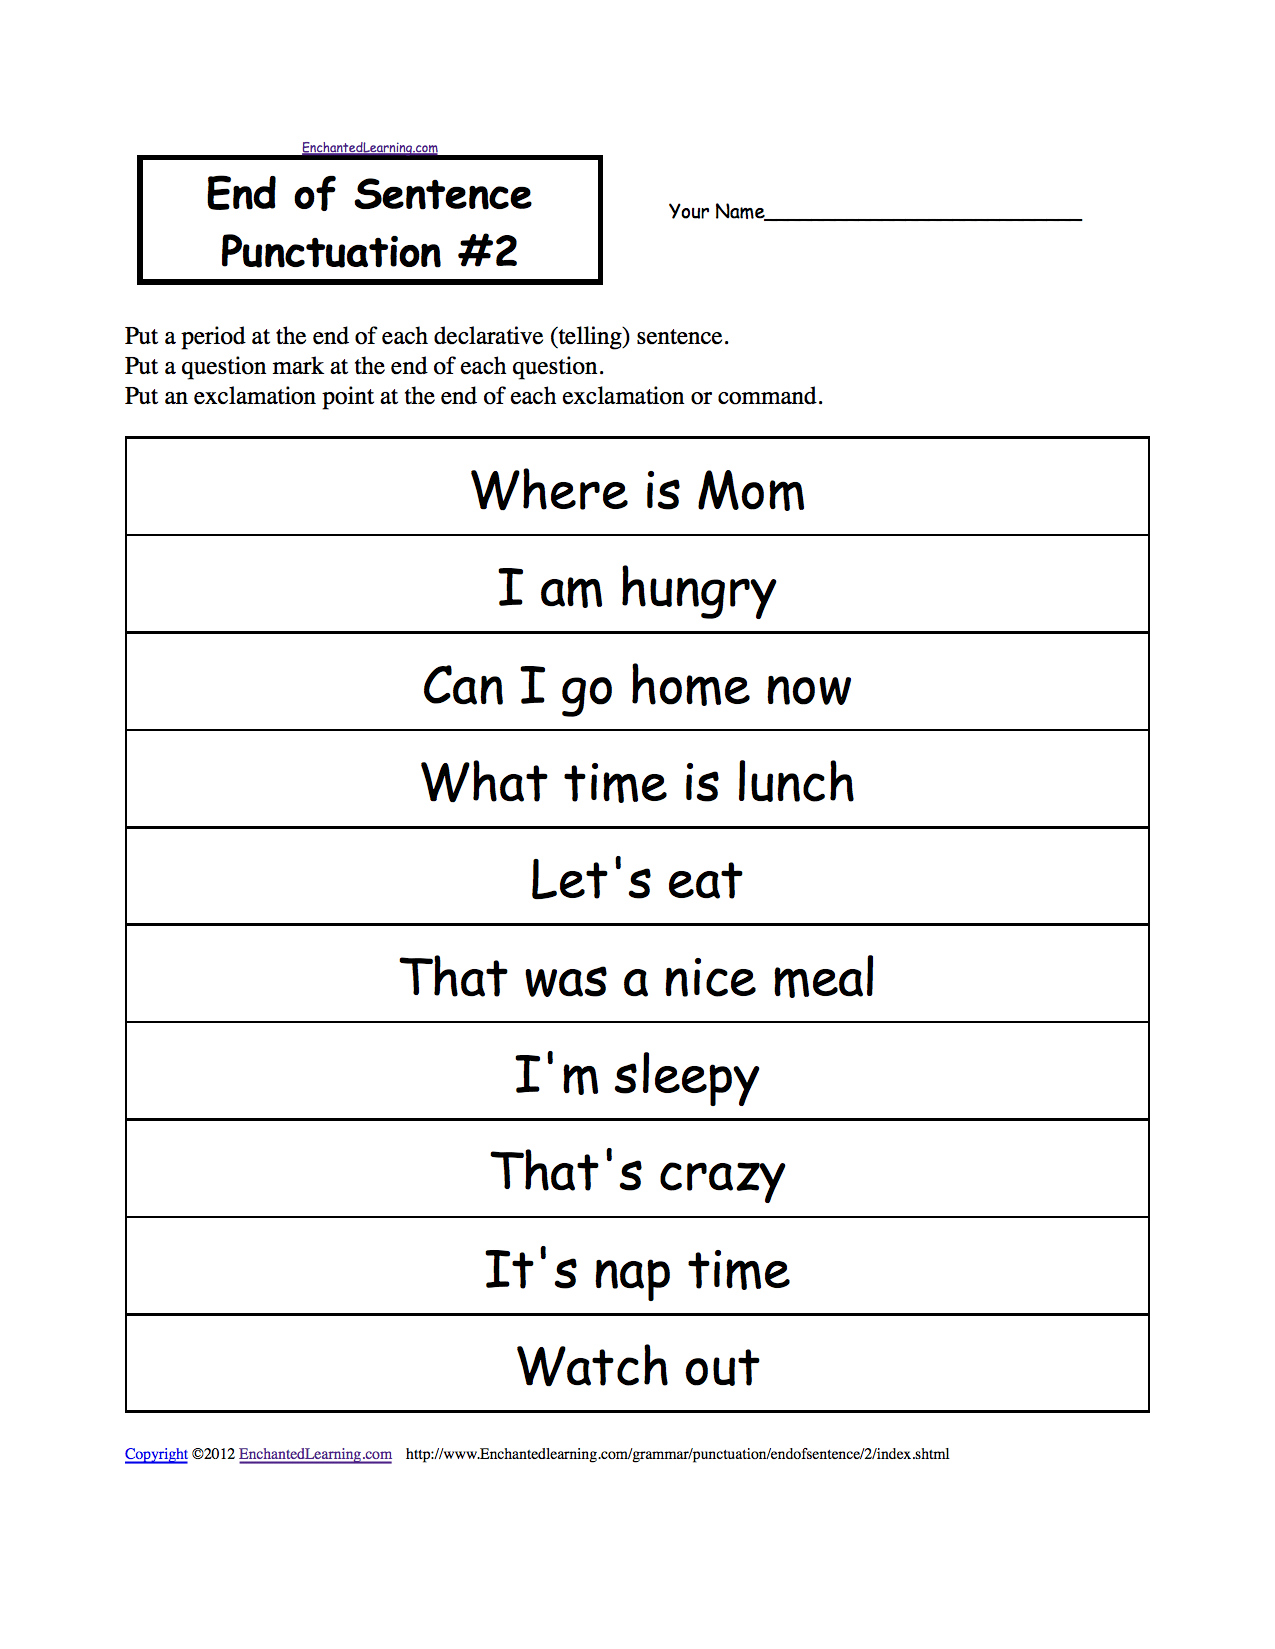 Worksheets 3rd Grade Punctuation Worksheets punctuation marks enchantedlearning com punctuate